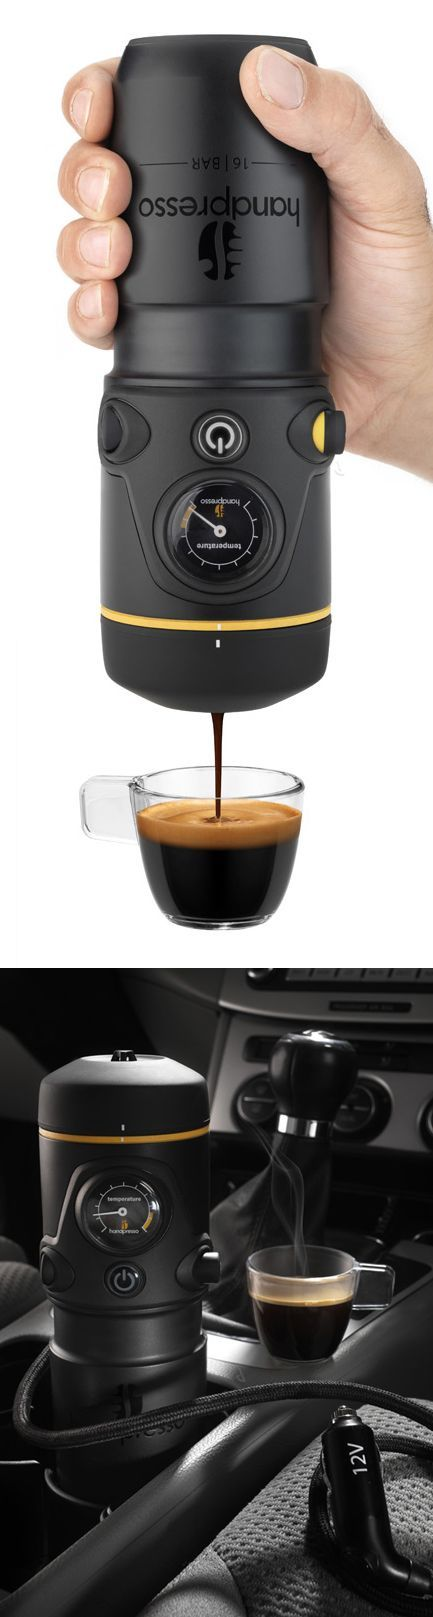 17 Best images about Love Gadgets on Pinterest Toilets, Sound waves and Keyboard